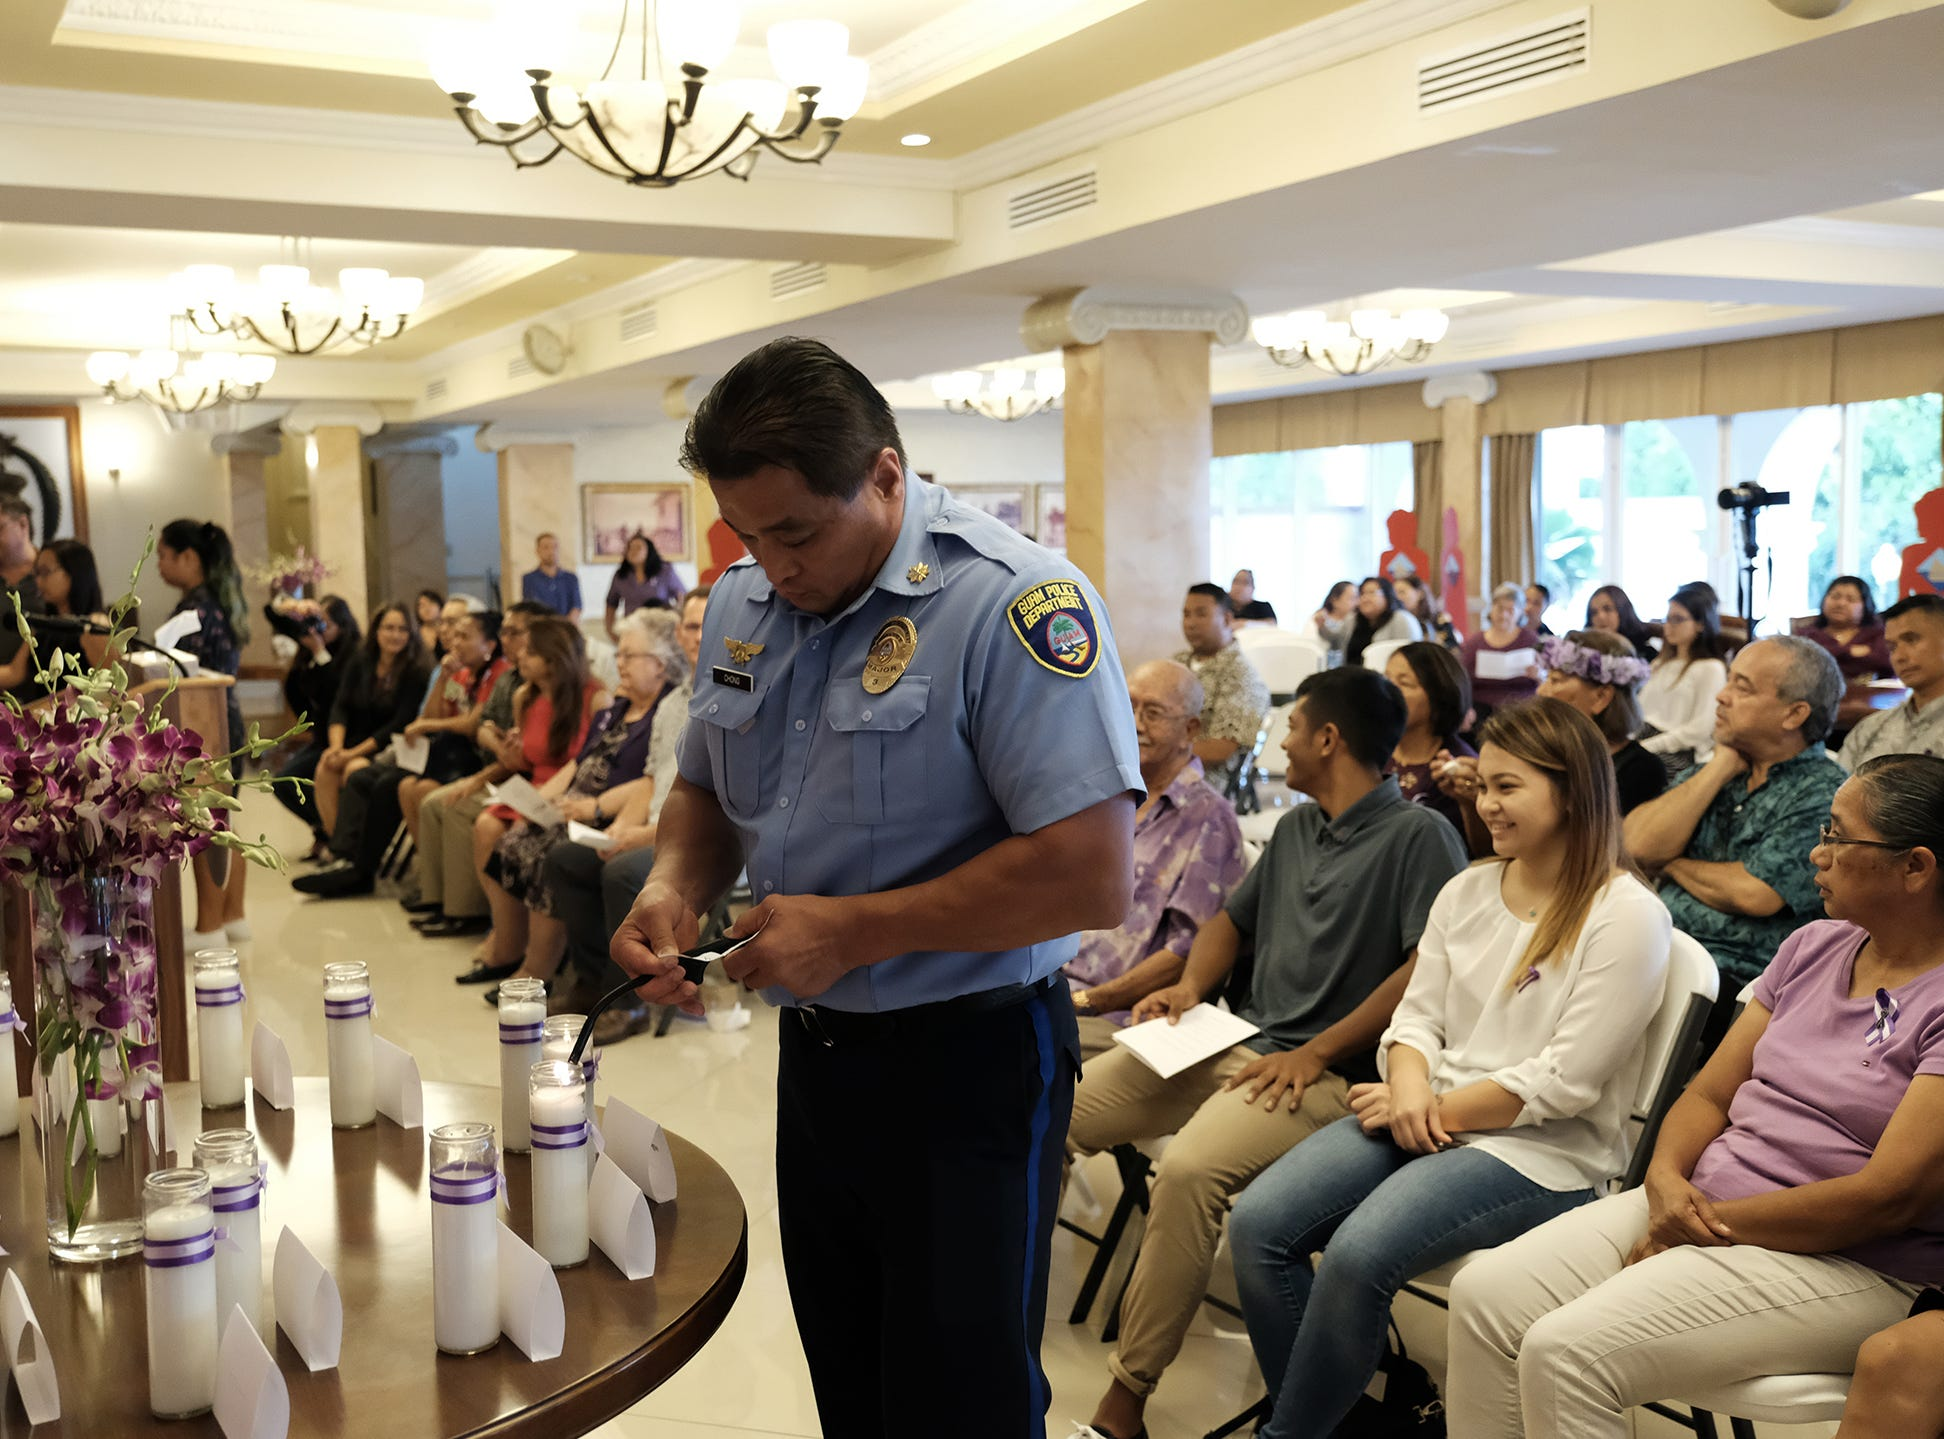 Guam Police Major Manny Chong lights a candle at the 2018 Silent Witness Ceremony at Government House Oct. 19, 2018.